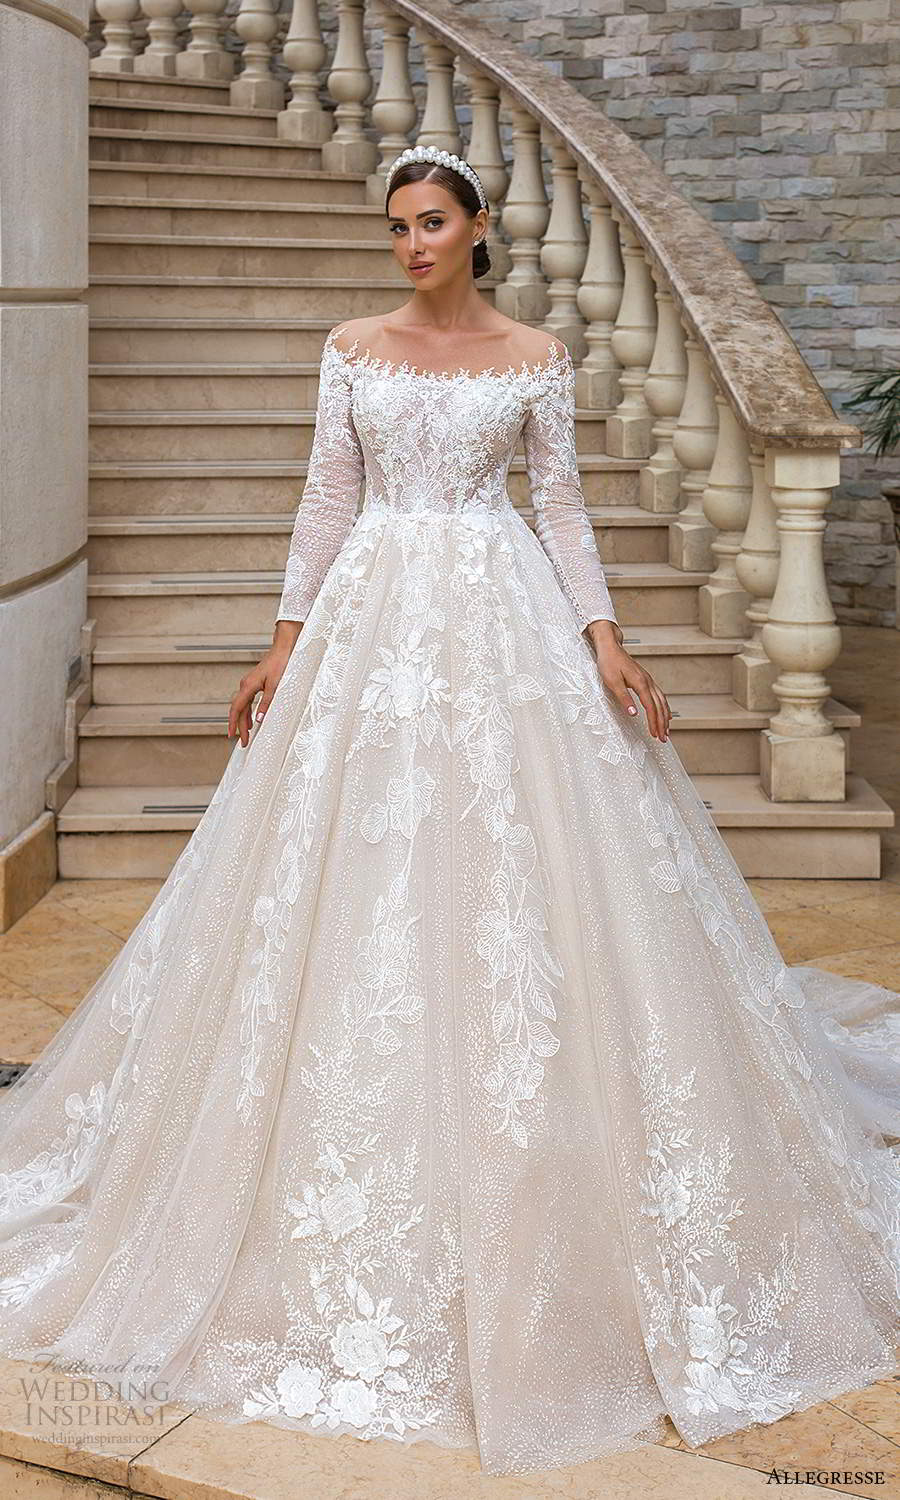 allegresse 2021 bridal long sleeves off shoulder neckline fully embellished a line ball gown princess wedding dress chapel train (14) mv